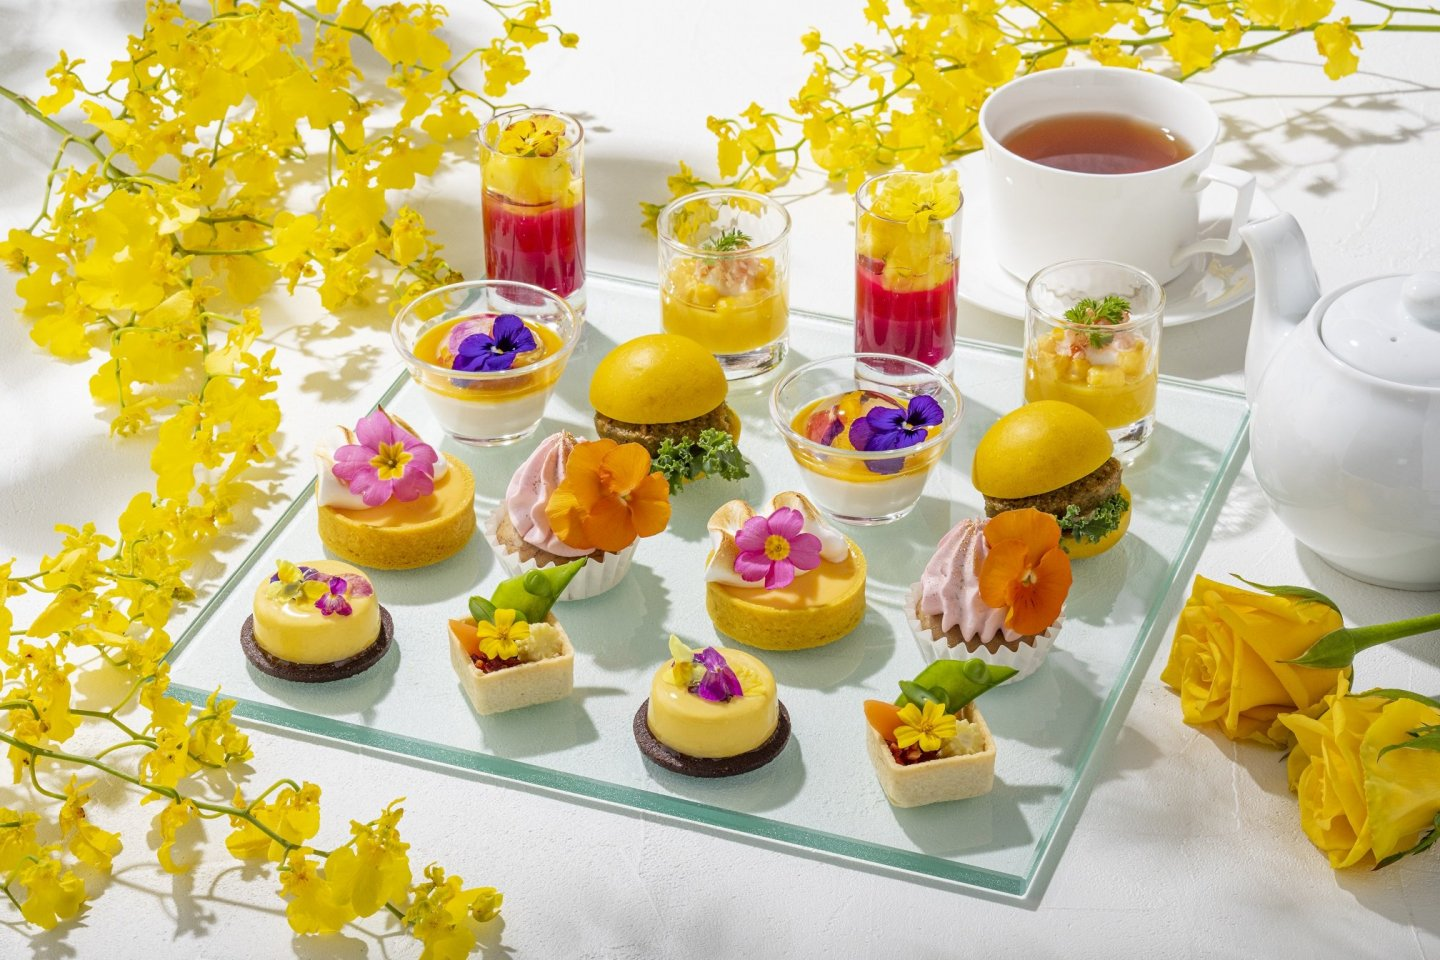 The Early Summer Afternoon Tea at the Conrad Tokyo takes on a yellow, floral theme